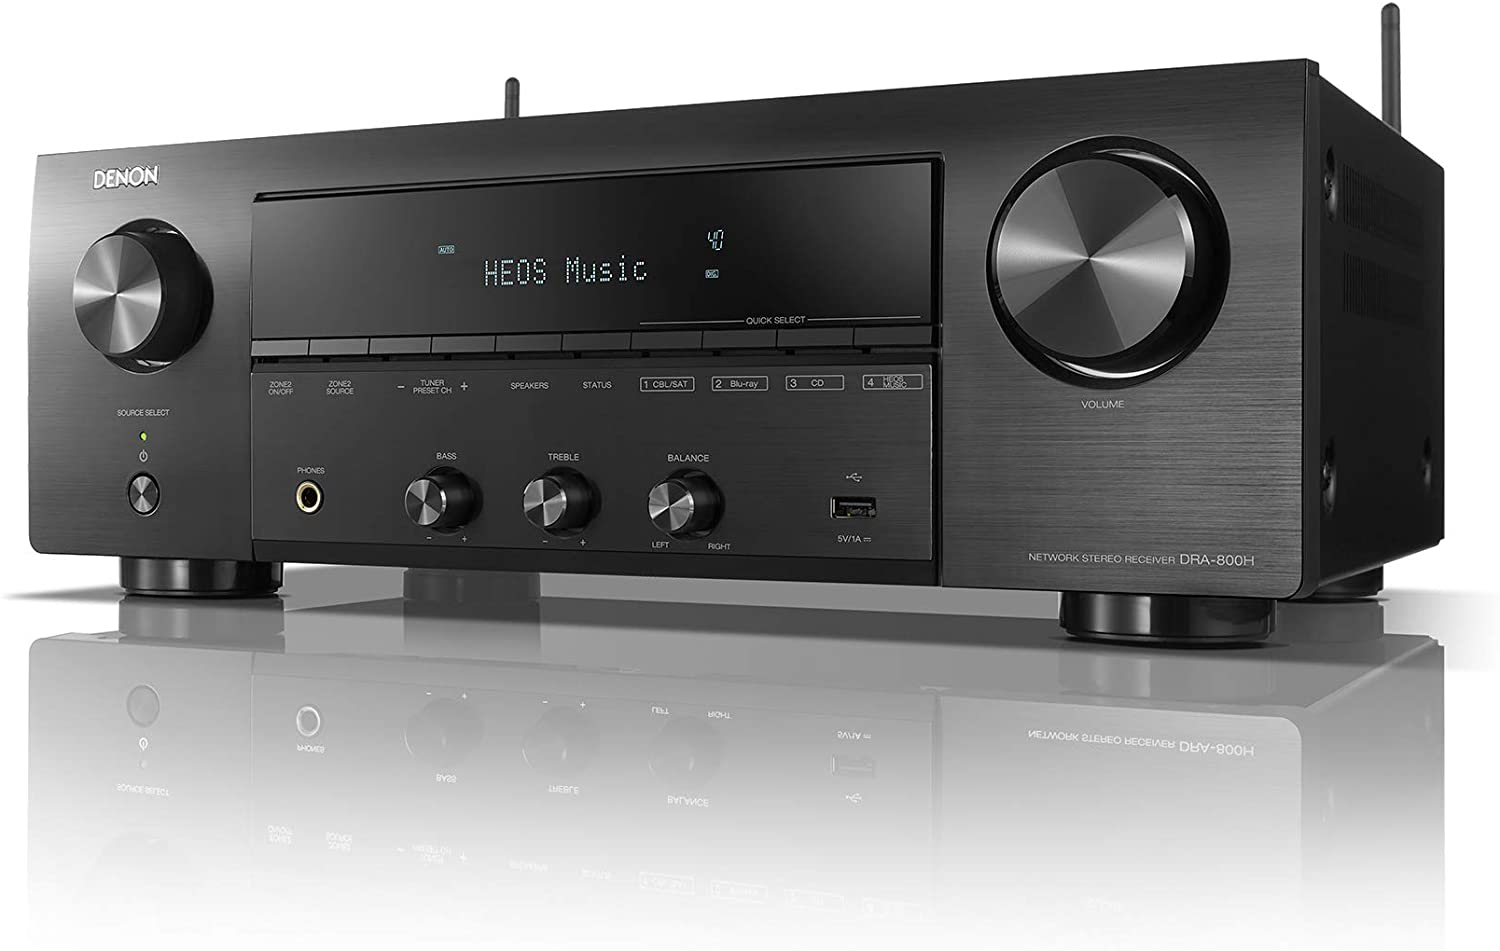 Denon DRA-800H 2-Channel Stereo Network Receiver for Home Theater | Hi-Fi Amplification | Connects to All Audio Sources | Latest HDCP 2.3 Processing with ARC Support | Compatible with Amazon Alexa